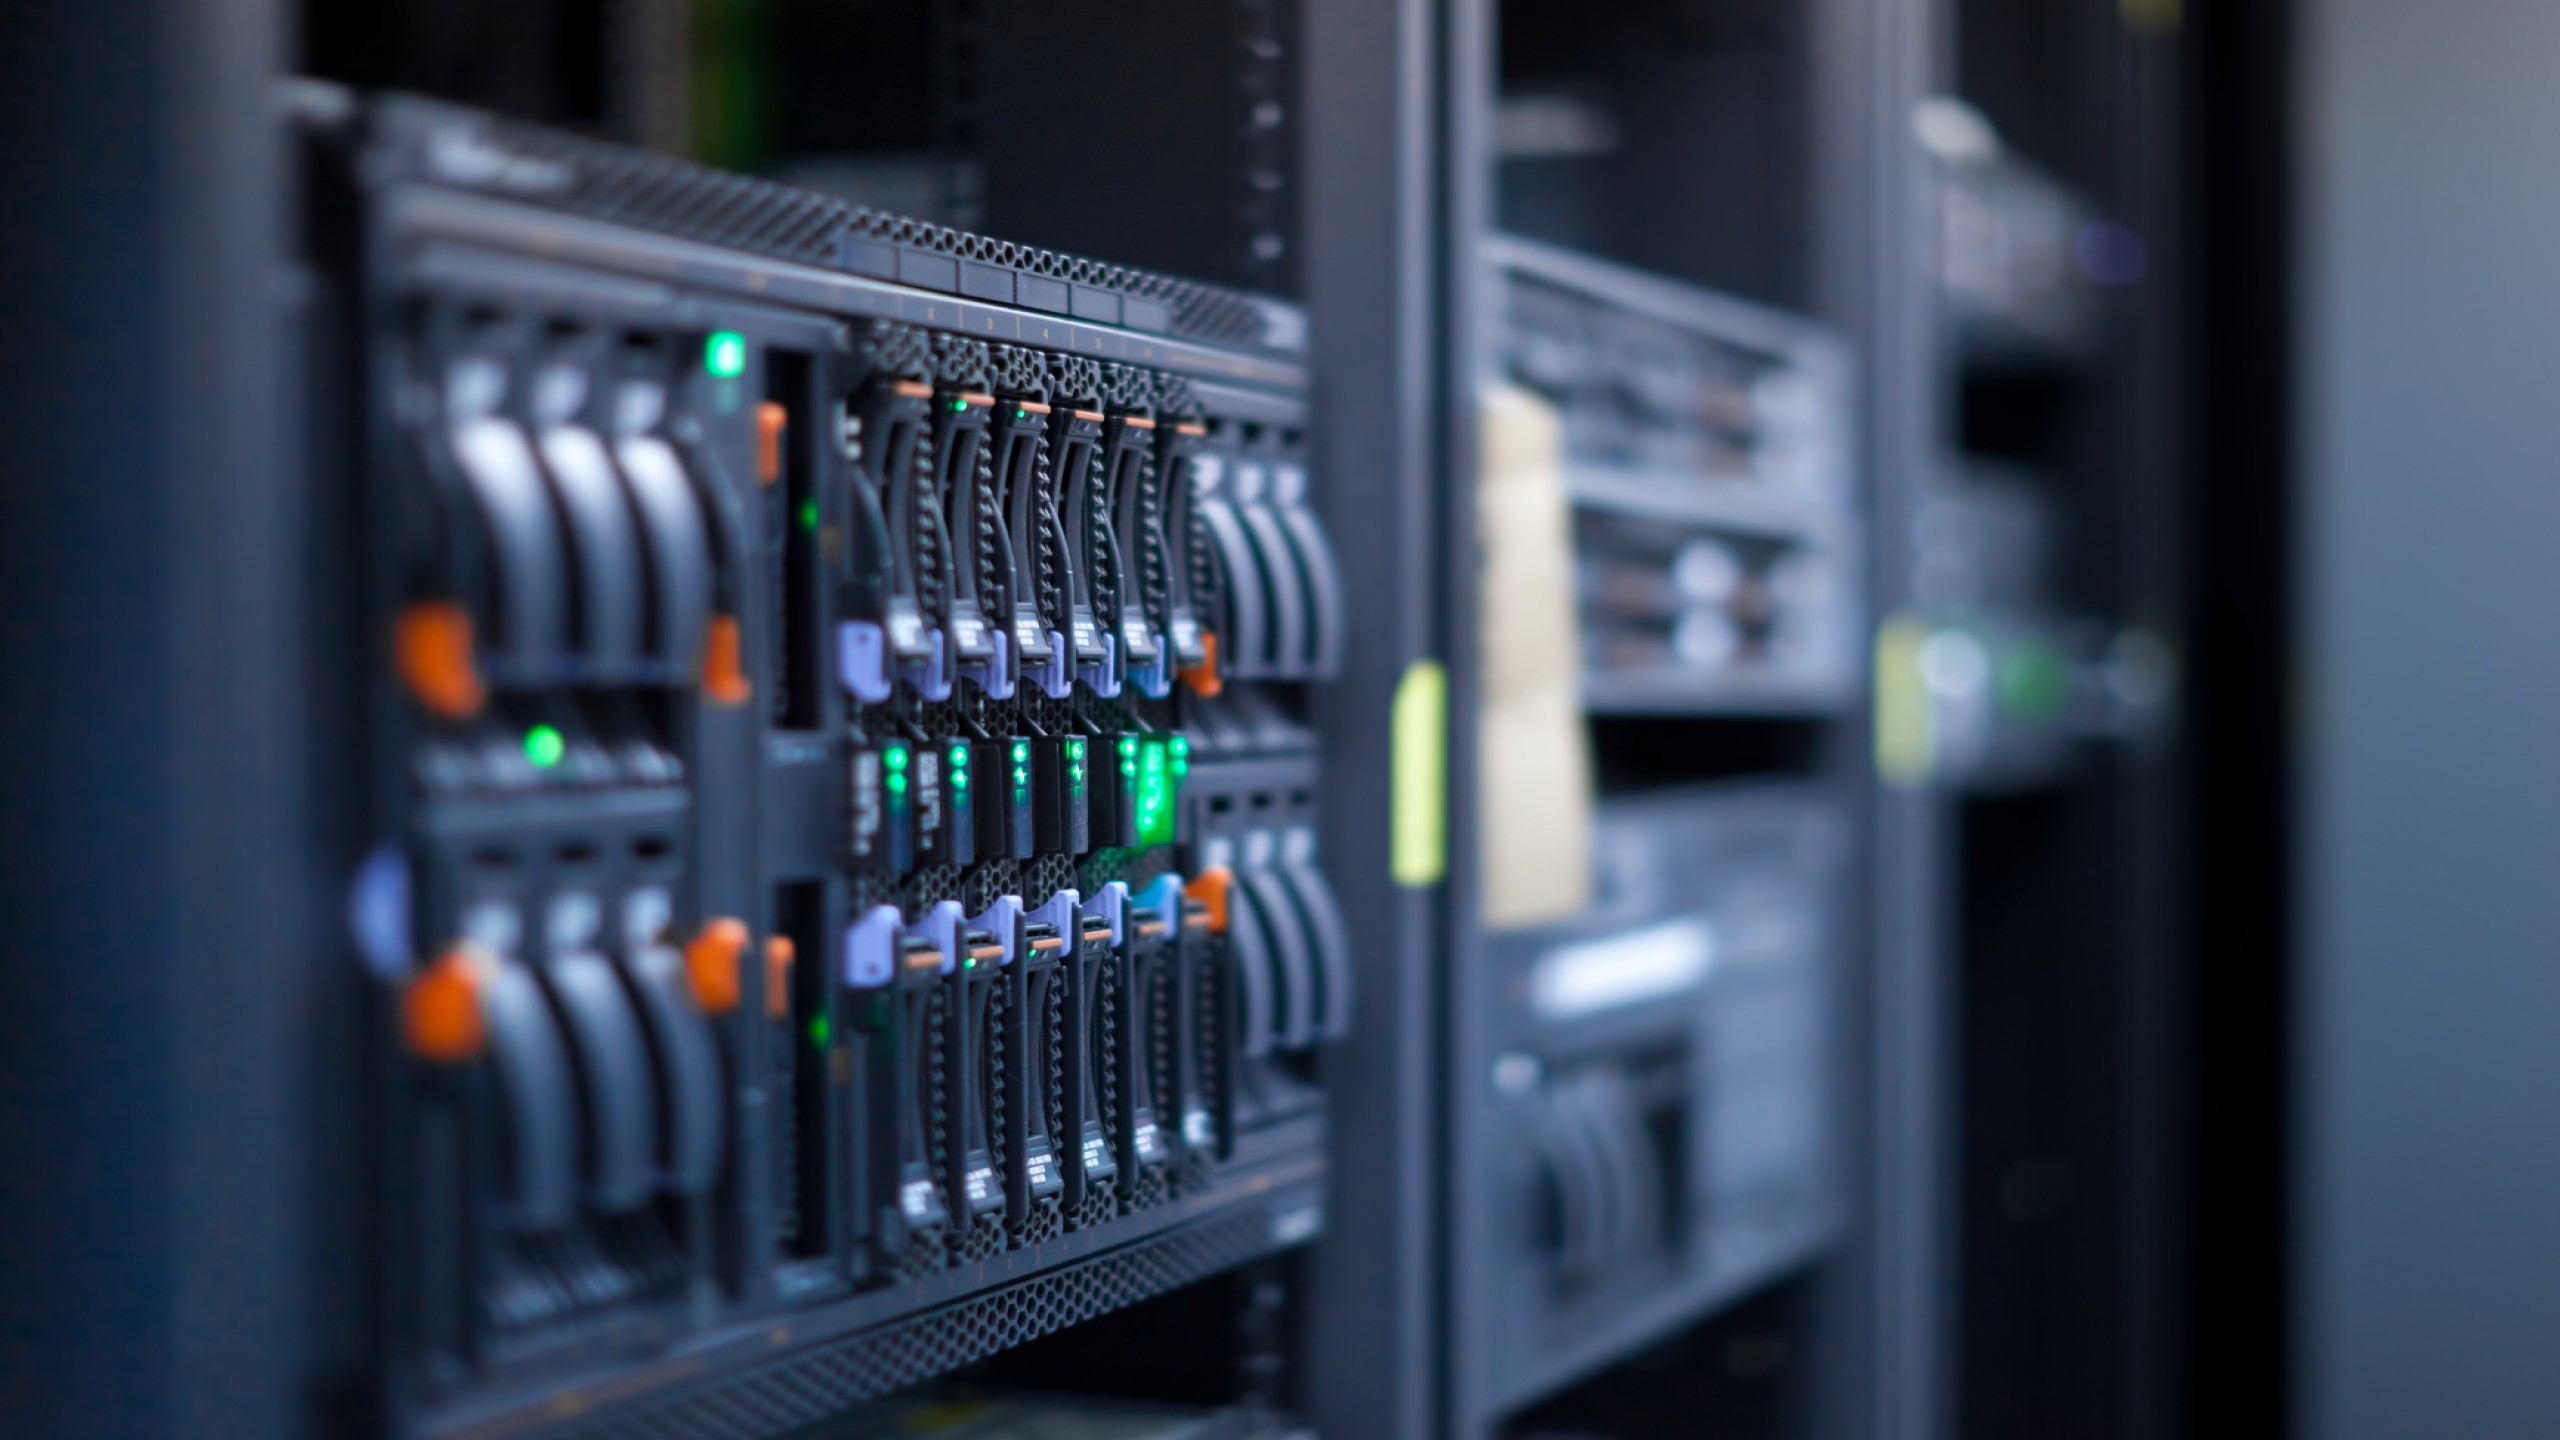 VPS Hosting. Deploy a virtual private server for workloads with low cost solution